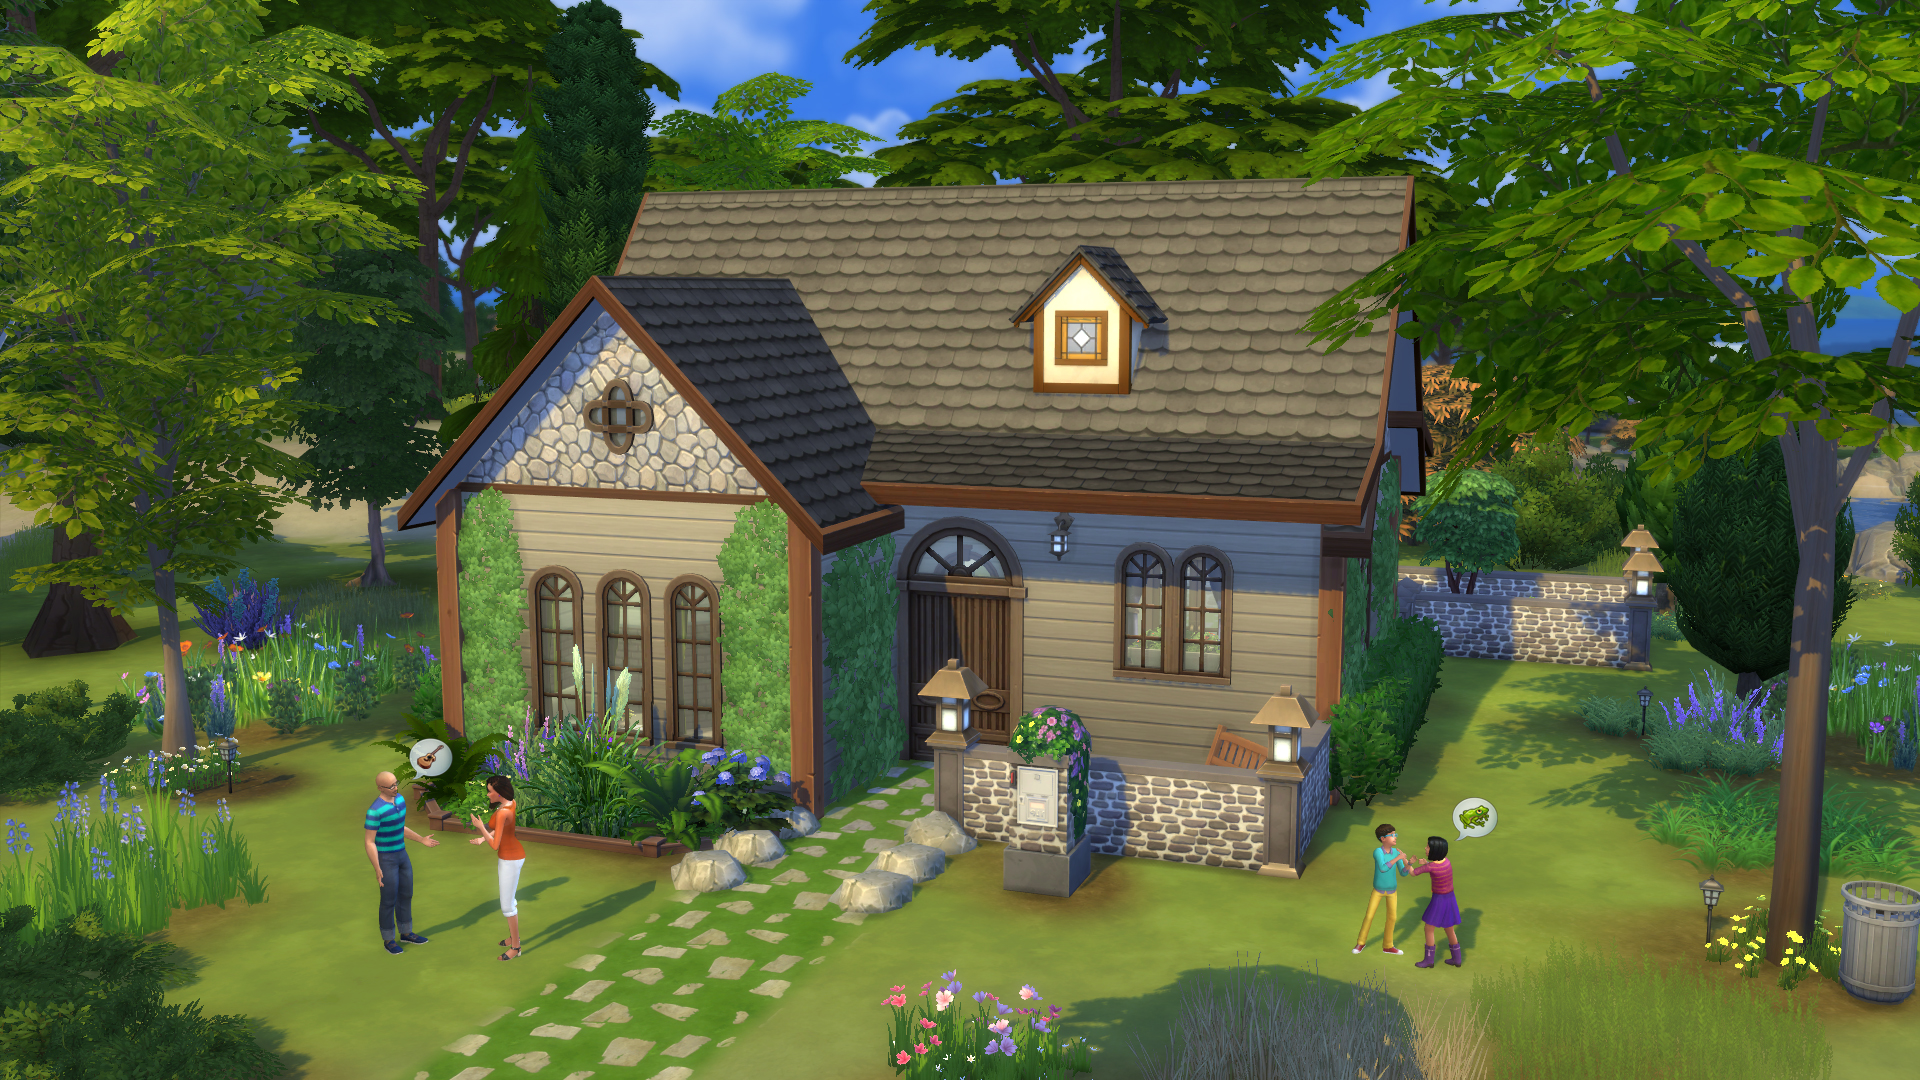 Ts4 678 ep02 gallery 02 001